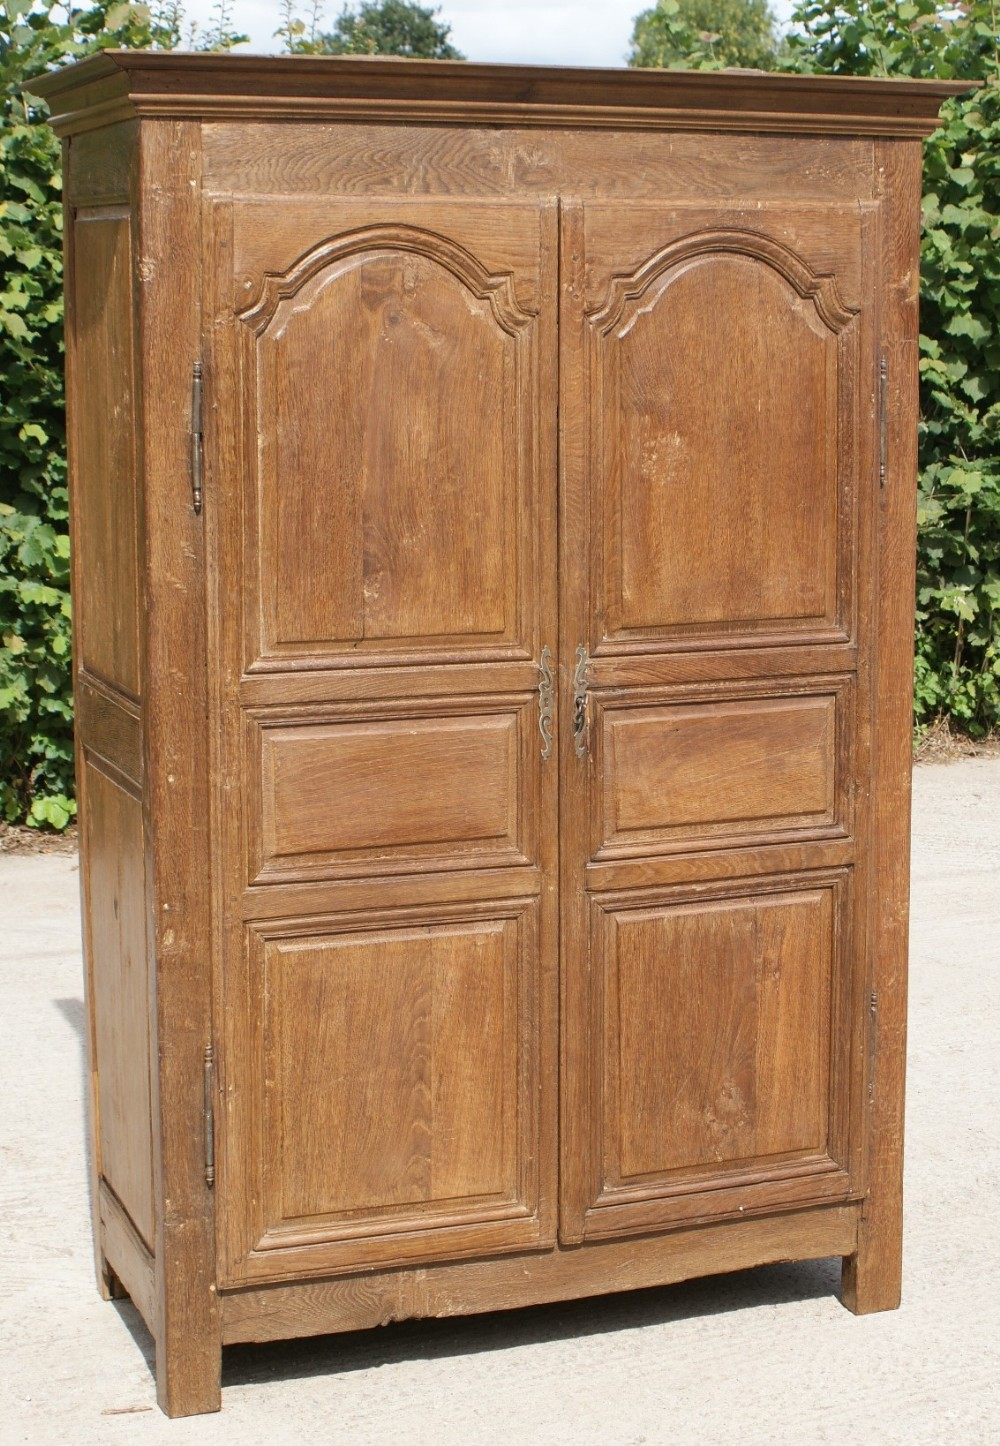 fantasti early 19th century small antique french oak armoire wardrobe